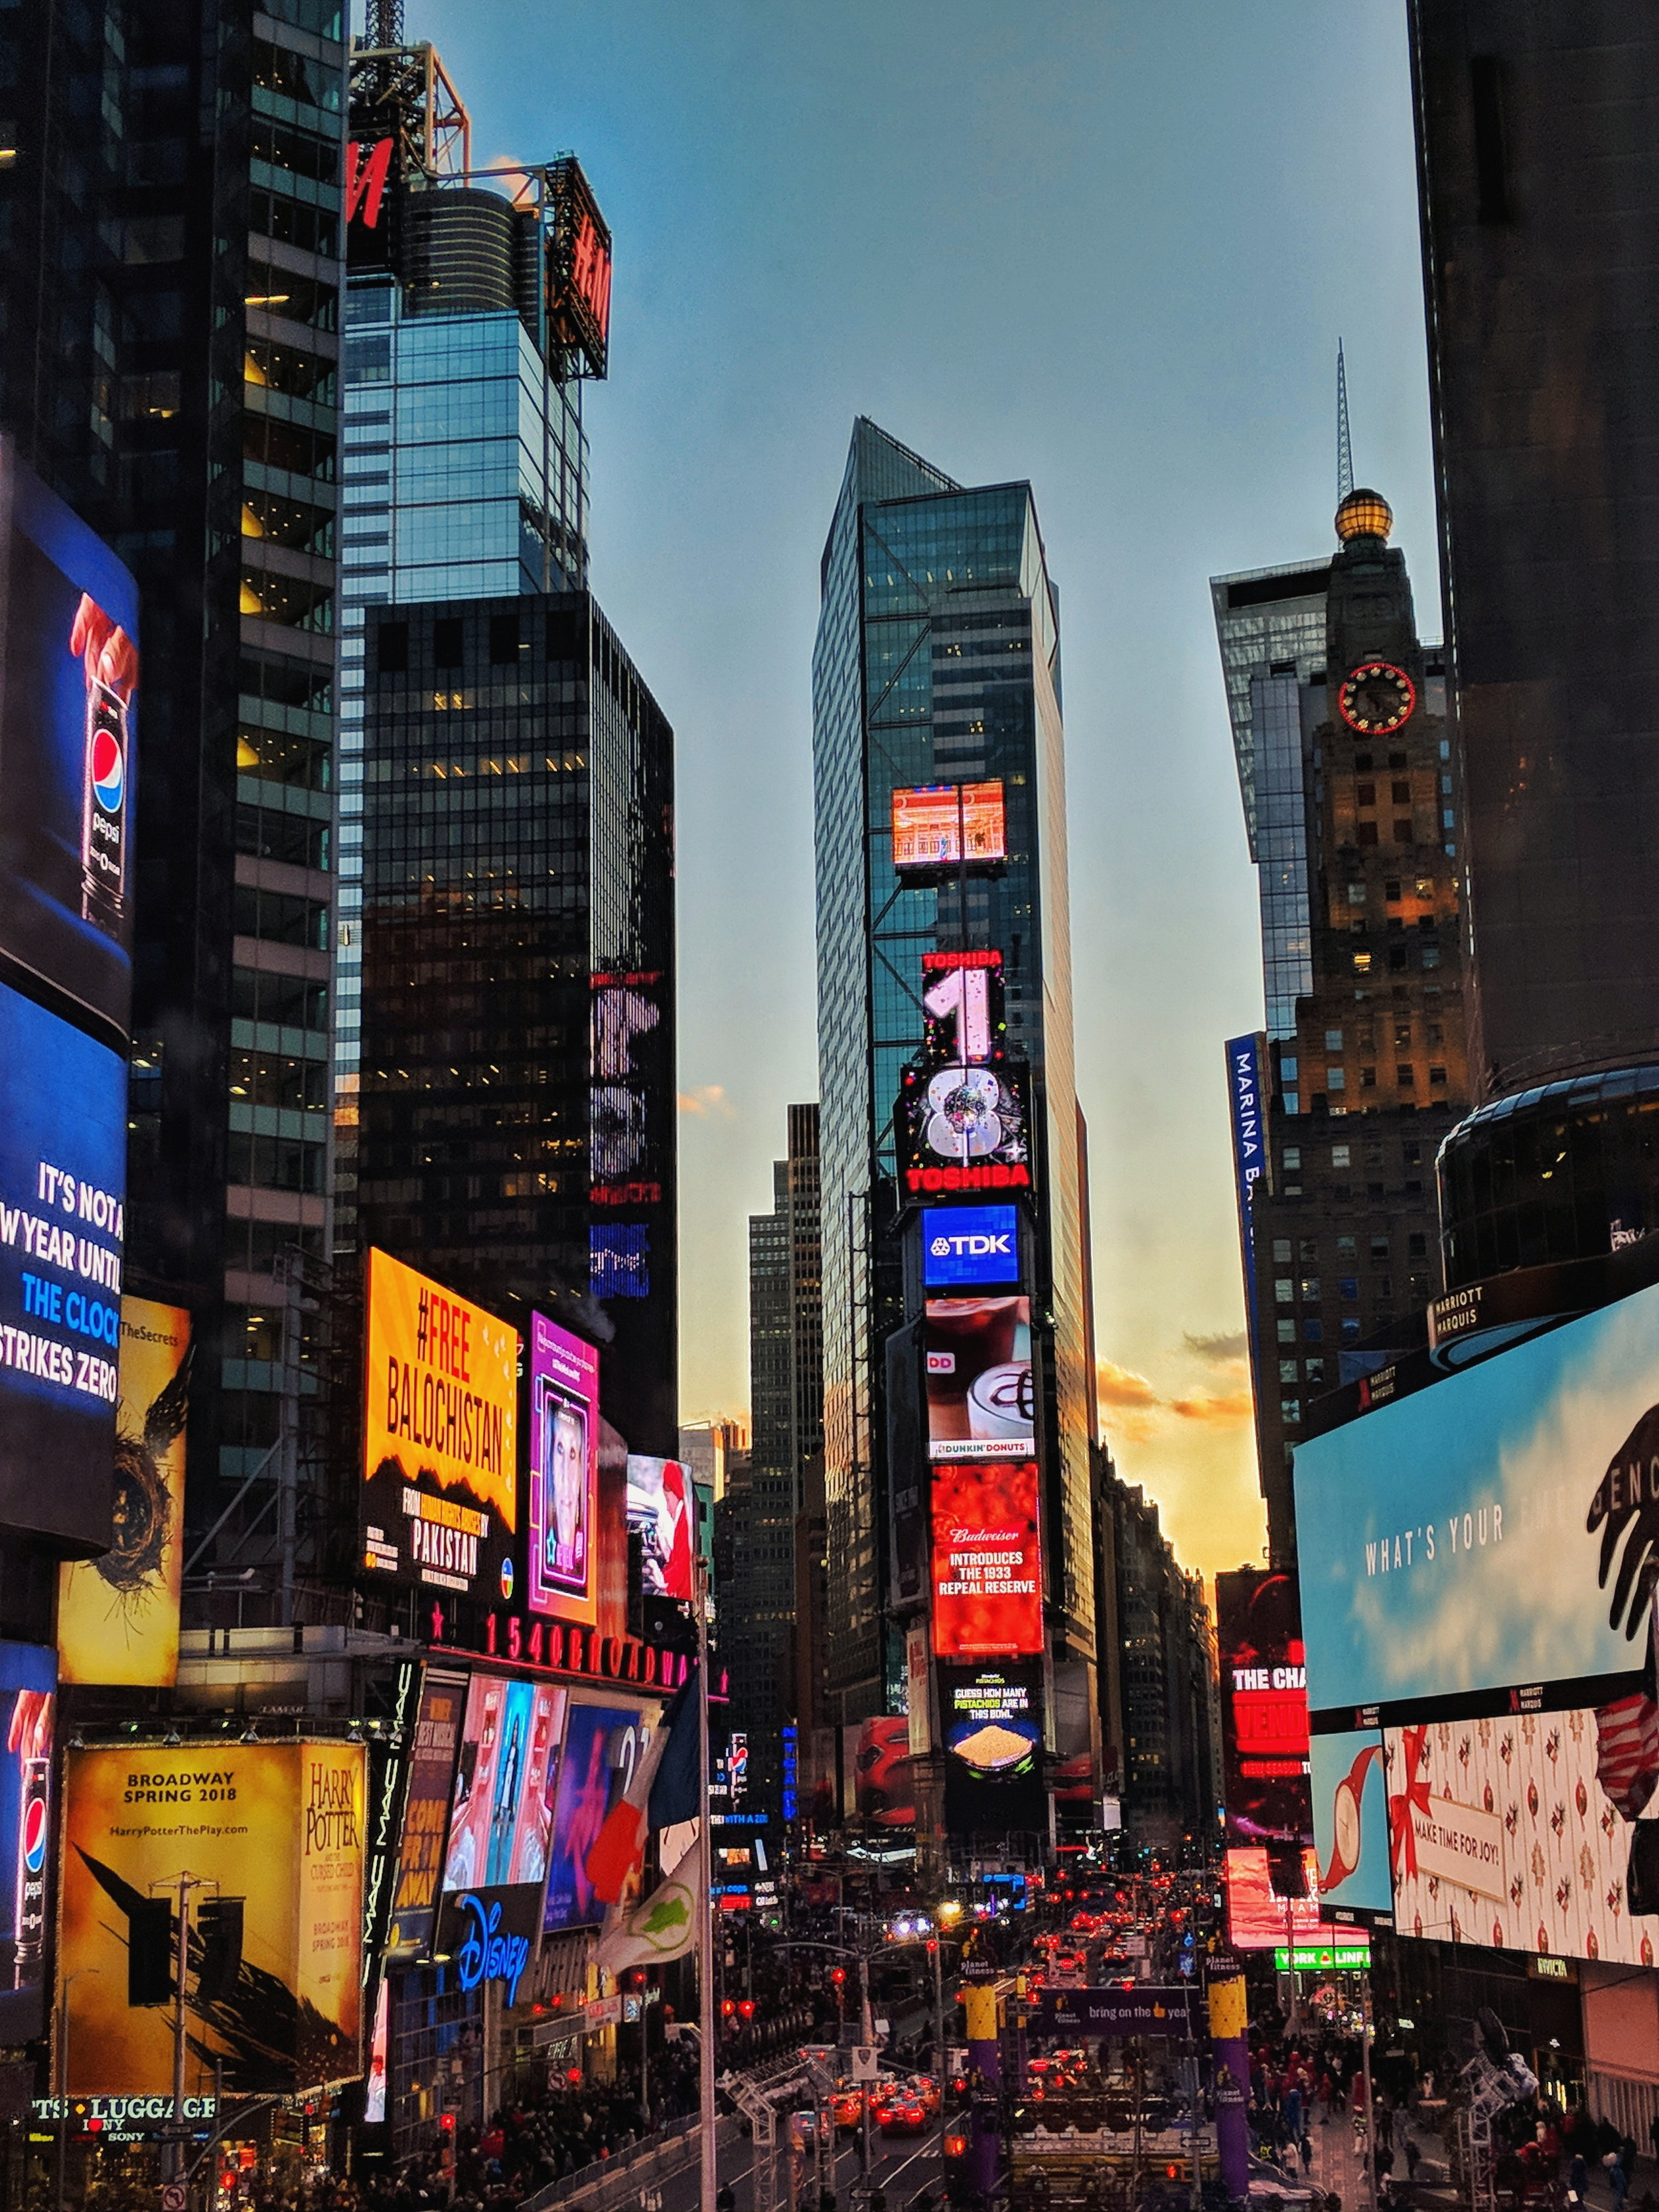 Times Square 2 days before 1 million people descend on Broadway Plaza and the surrounding streets.